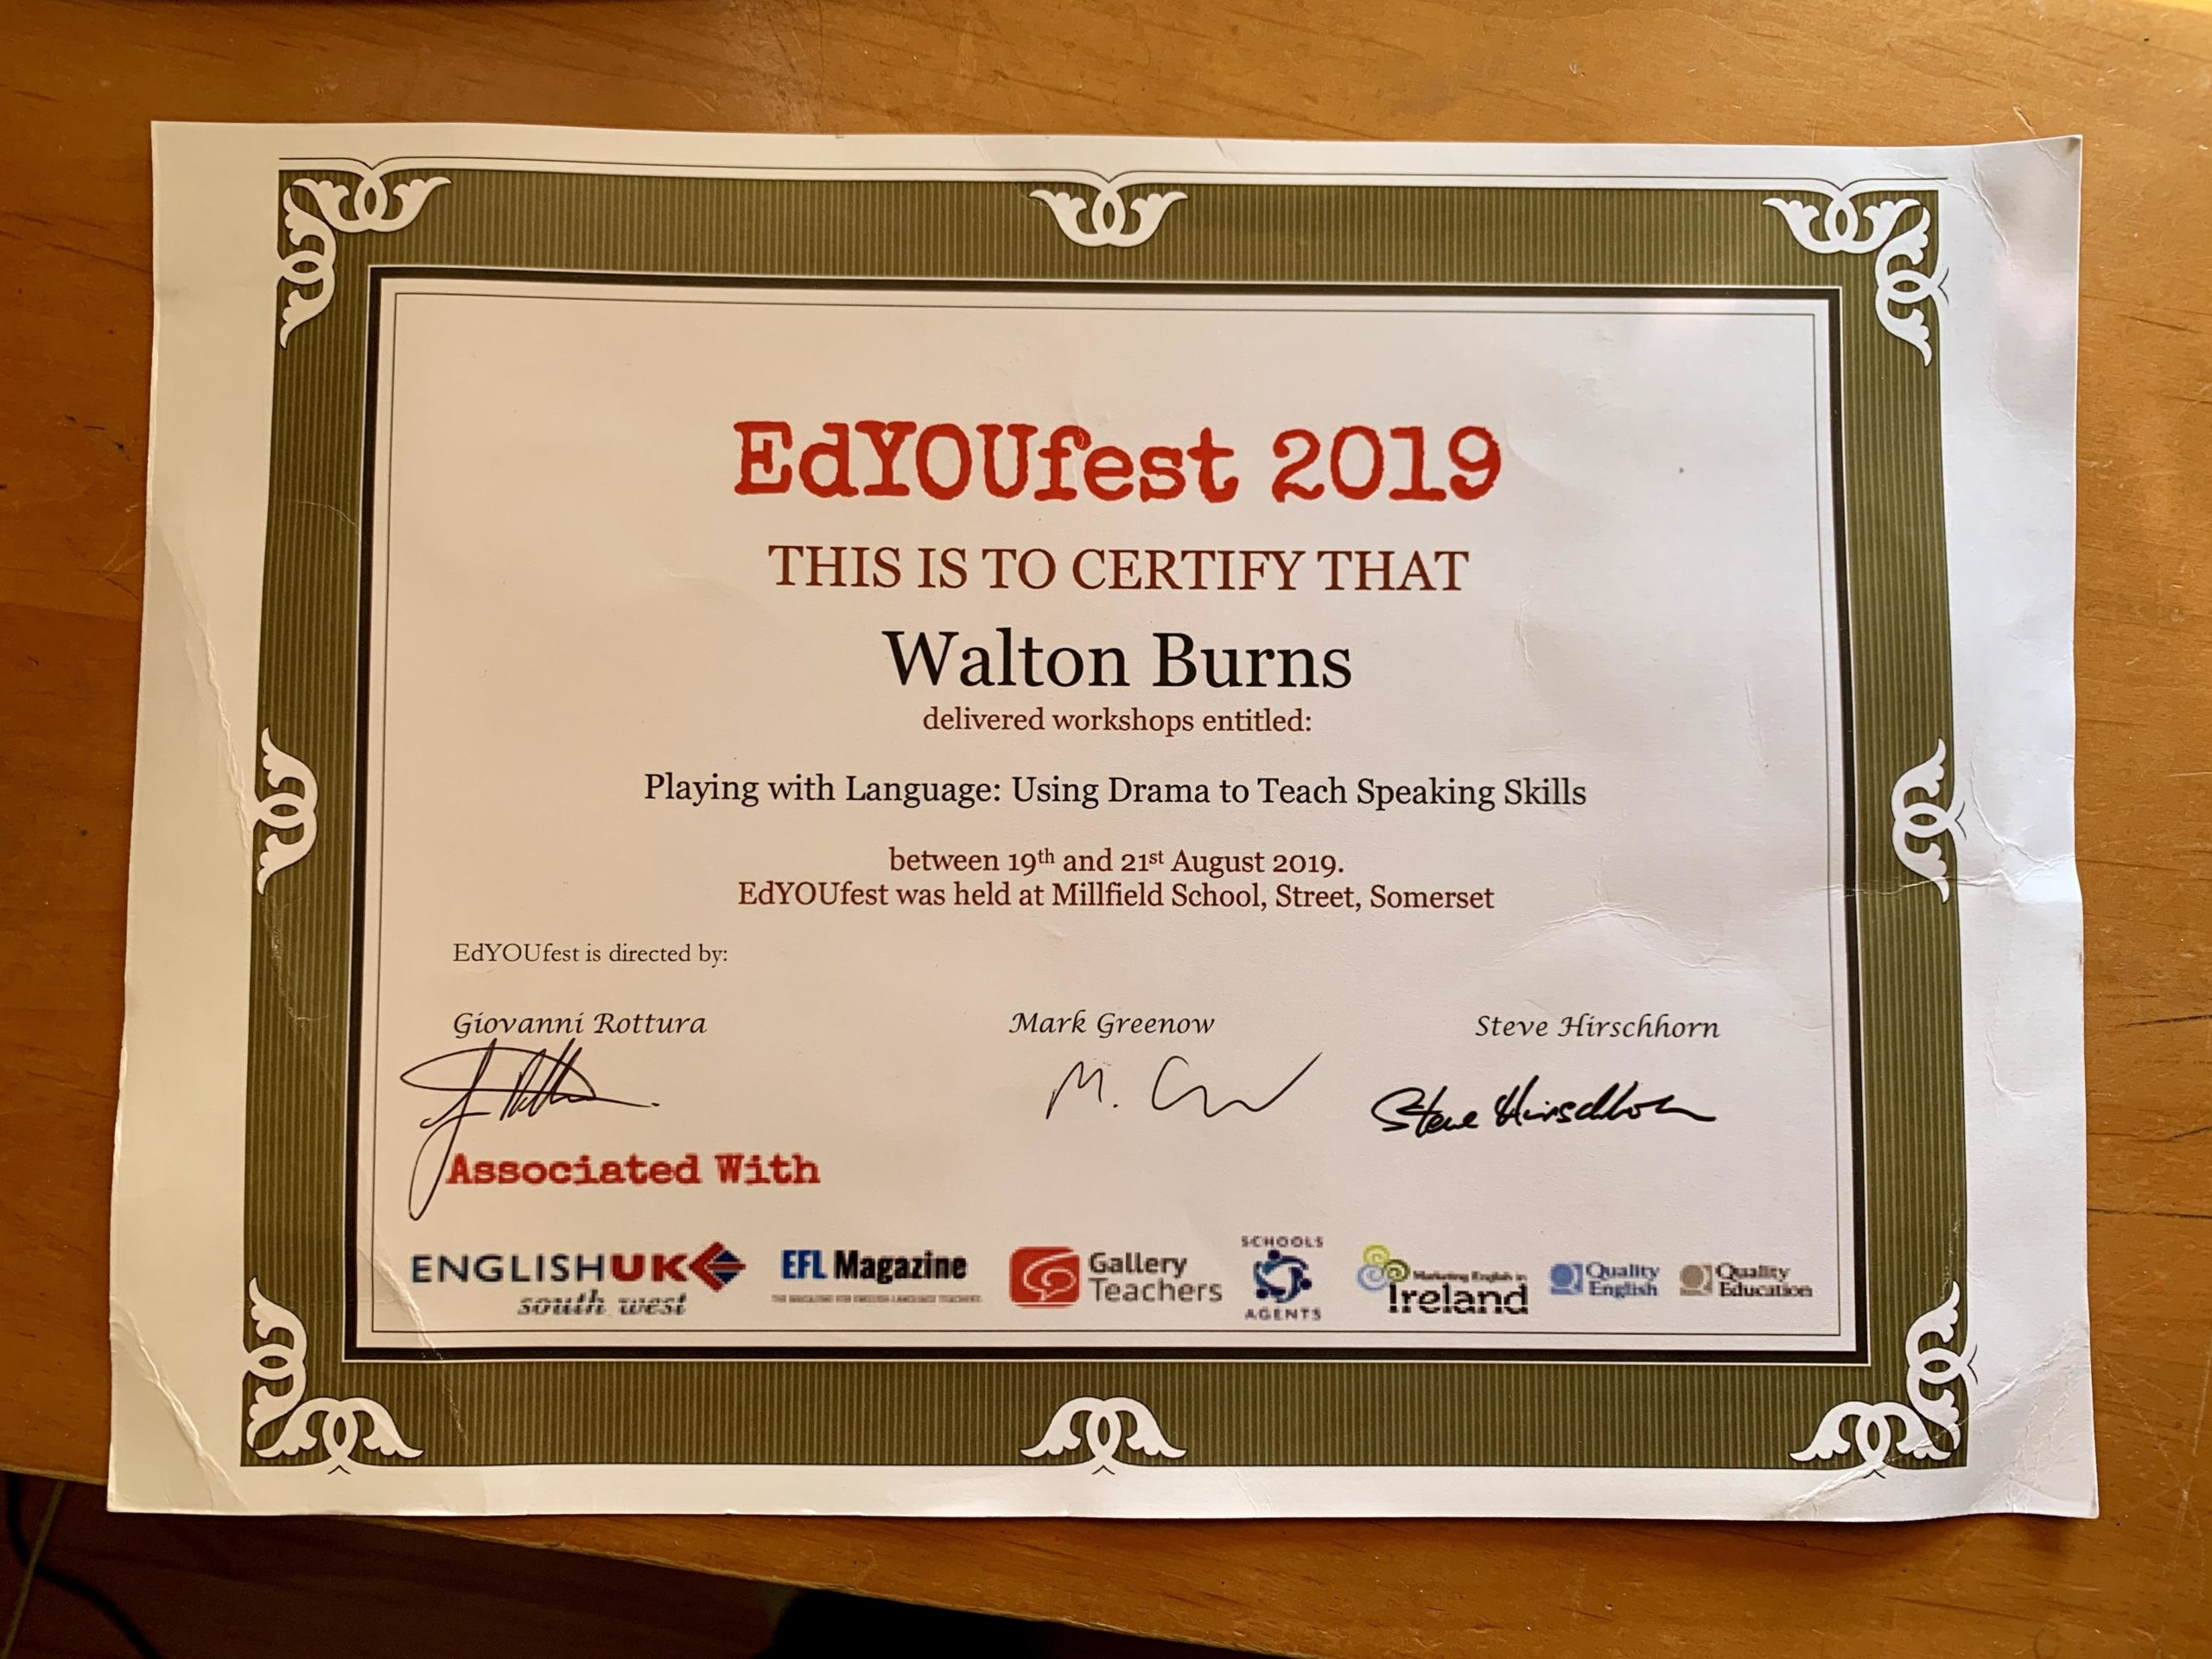 Ed You Fest 2019 Certificate issued to Walton Burns for delivering the presentation Playing with Language